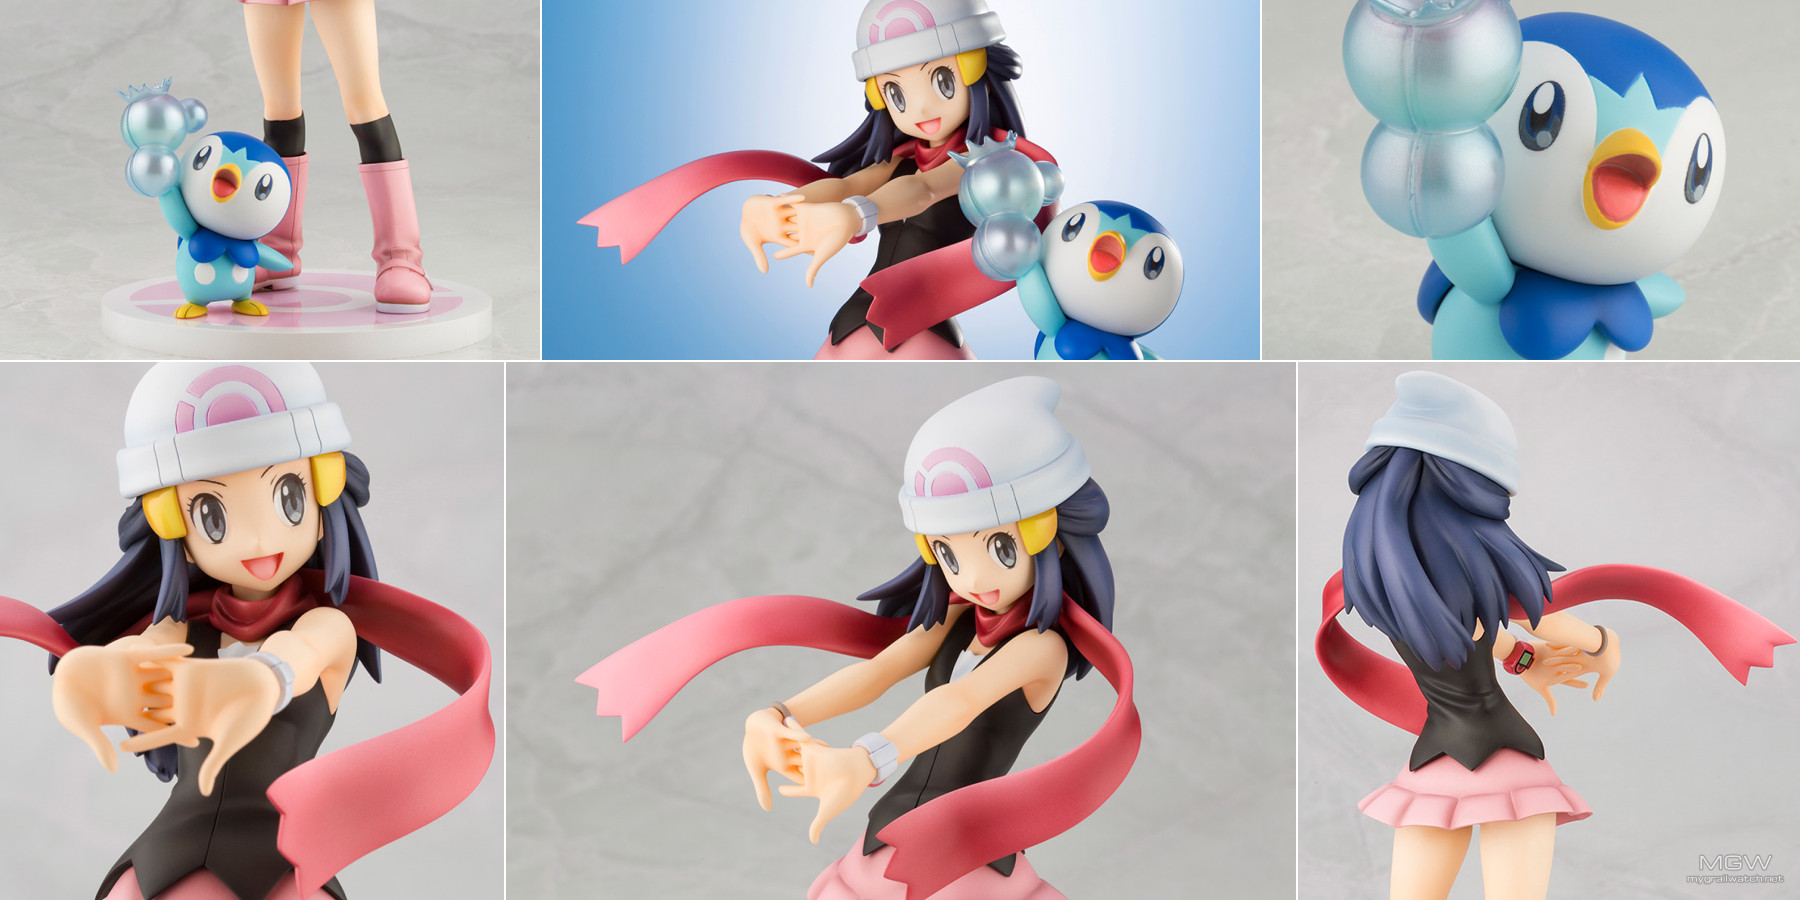 ARTFX J Dawn with Piplup by Kotobukiya from Pokemon